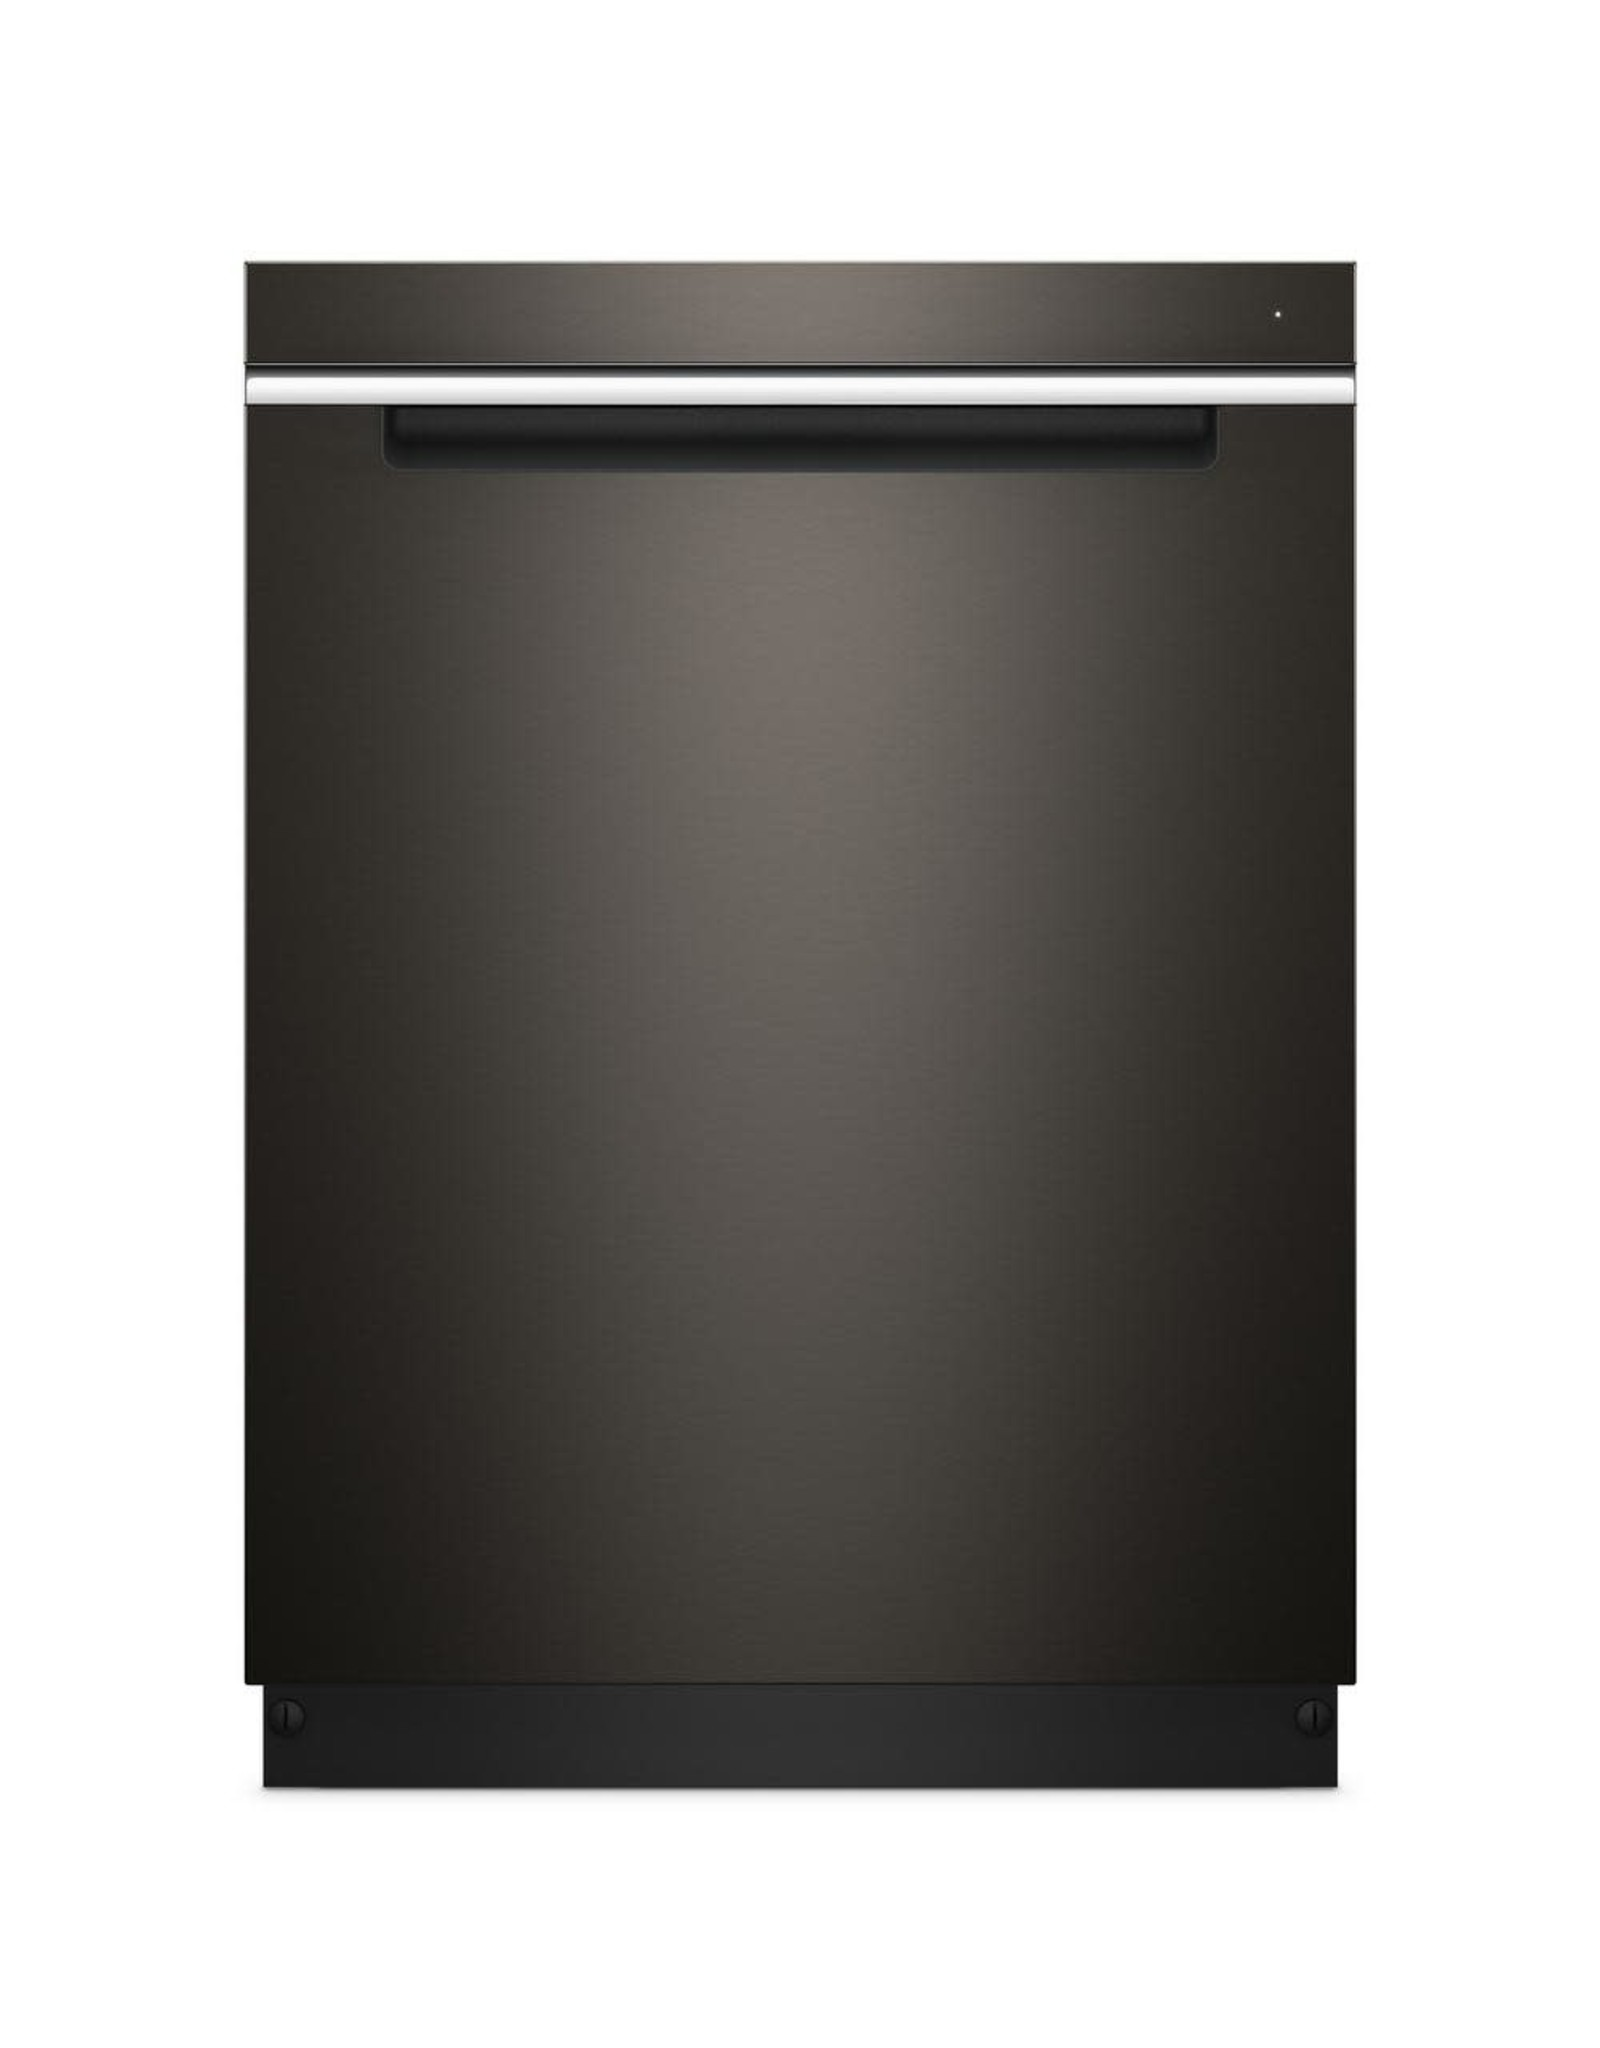 SAMSUNG WDTA505AHV Top Control Tall Tub Built-In Dishwasher in Fingerprint Resistant Stainless Steel with Stainless Steel Tub, 47 dBA